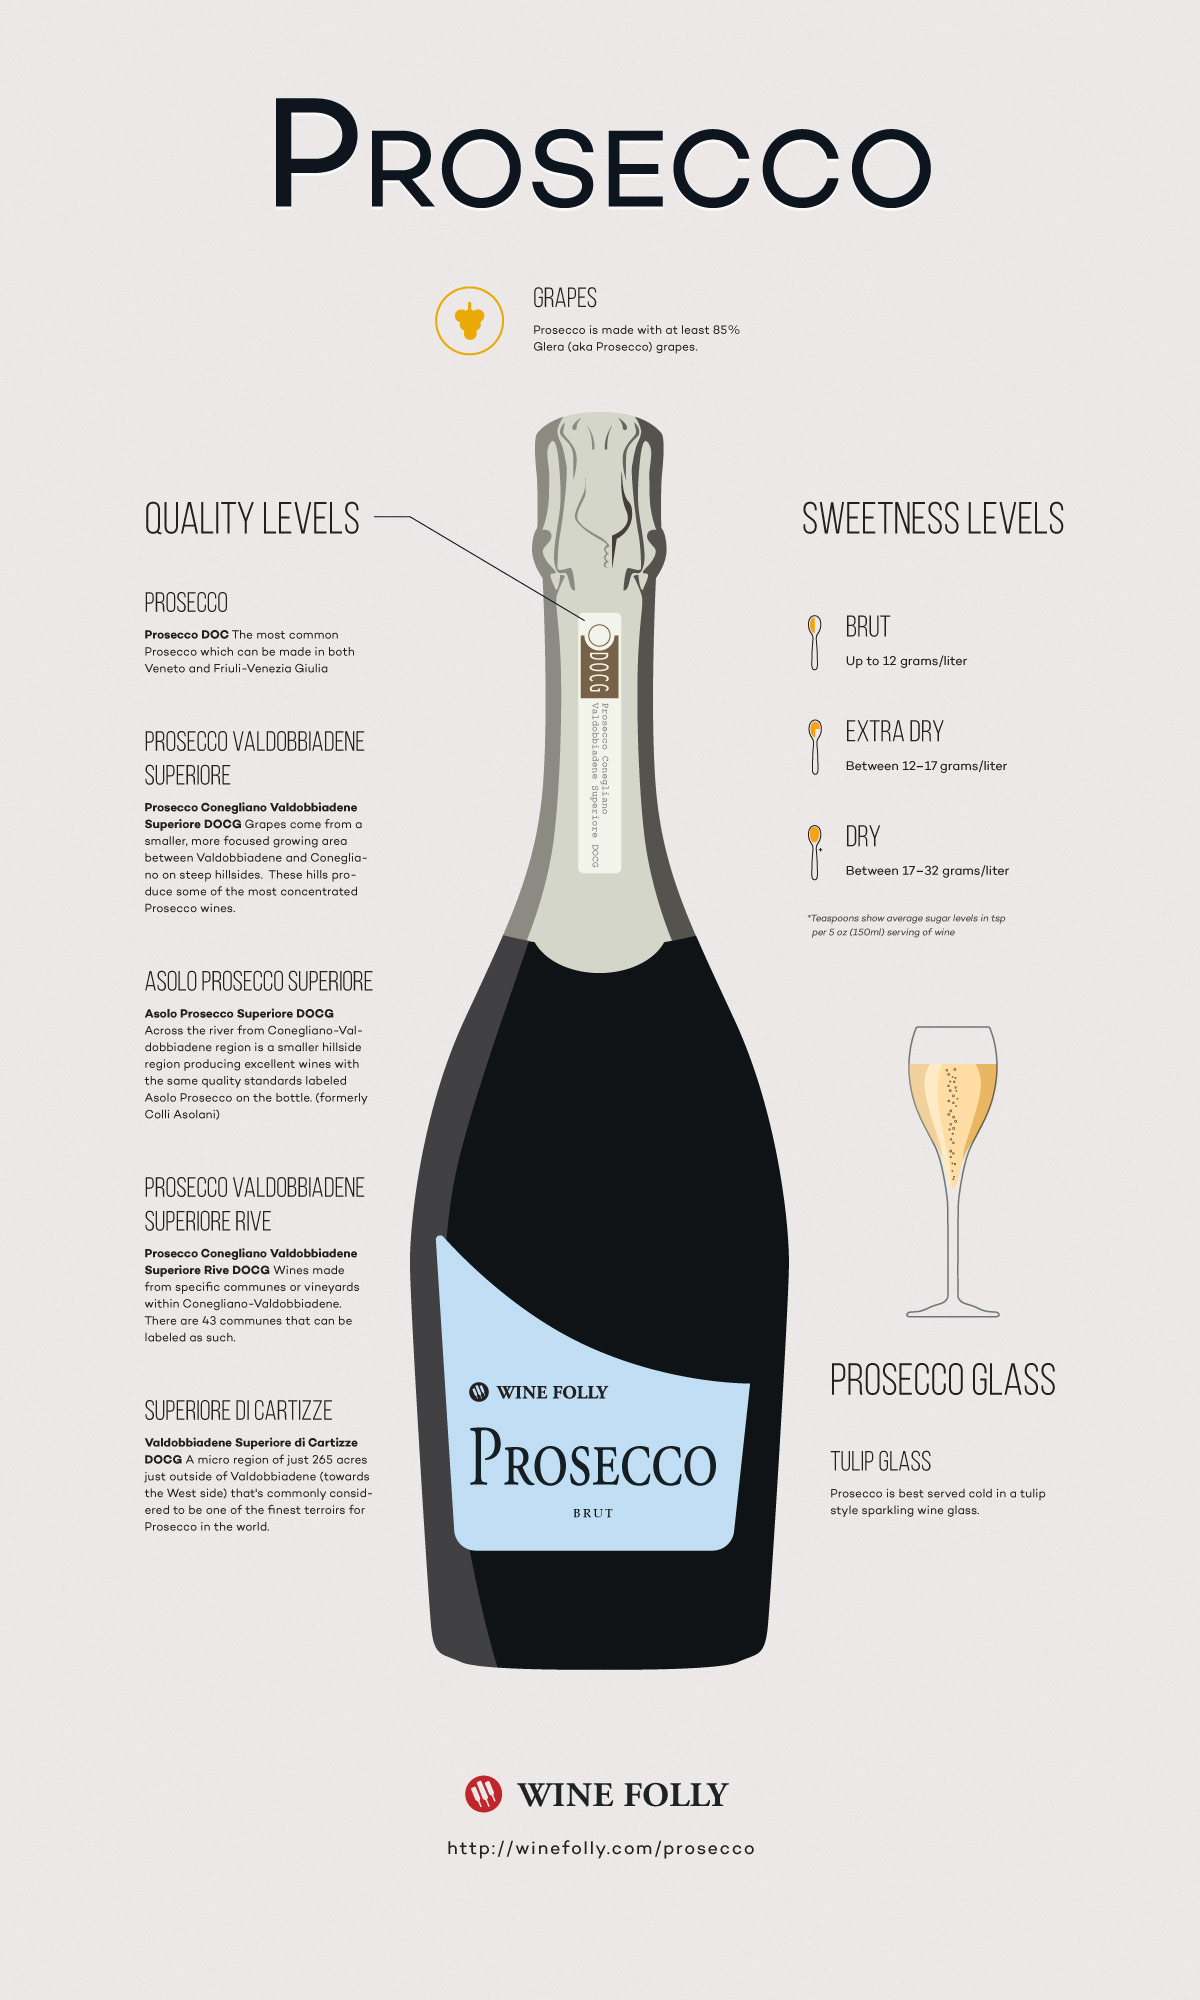 Visual Guide to Prosecco Wine by Wine Folly